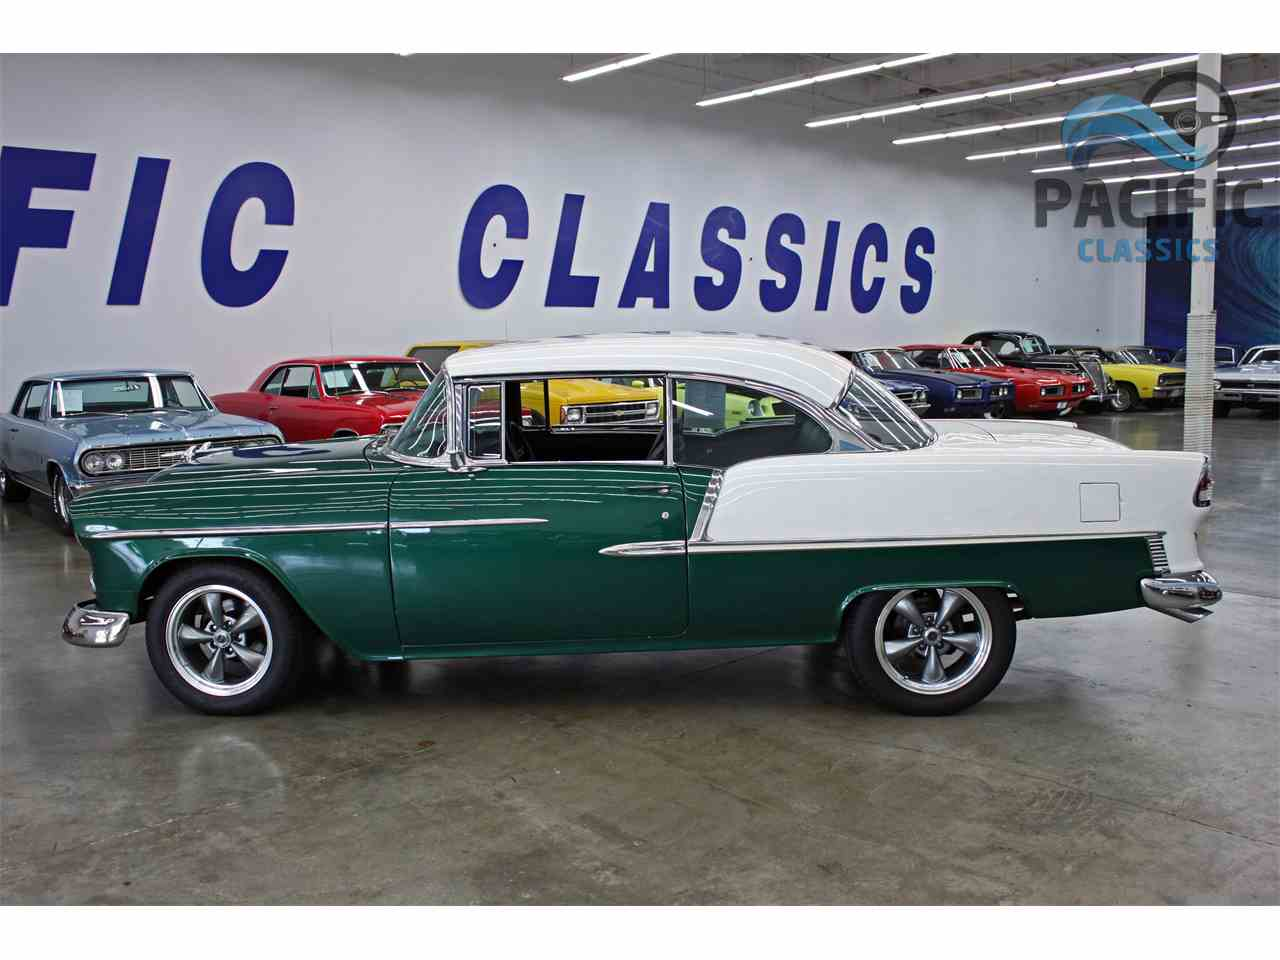 Large Picture of Classic '55 210 located in Washington Offered by Pacific Classics - JKKC